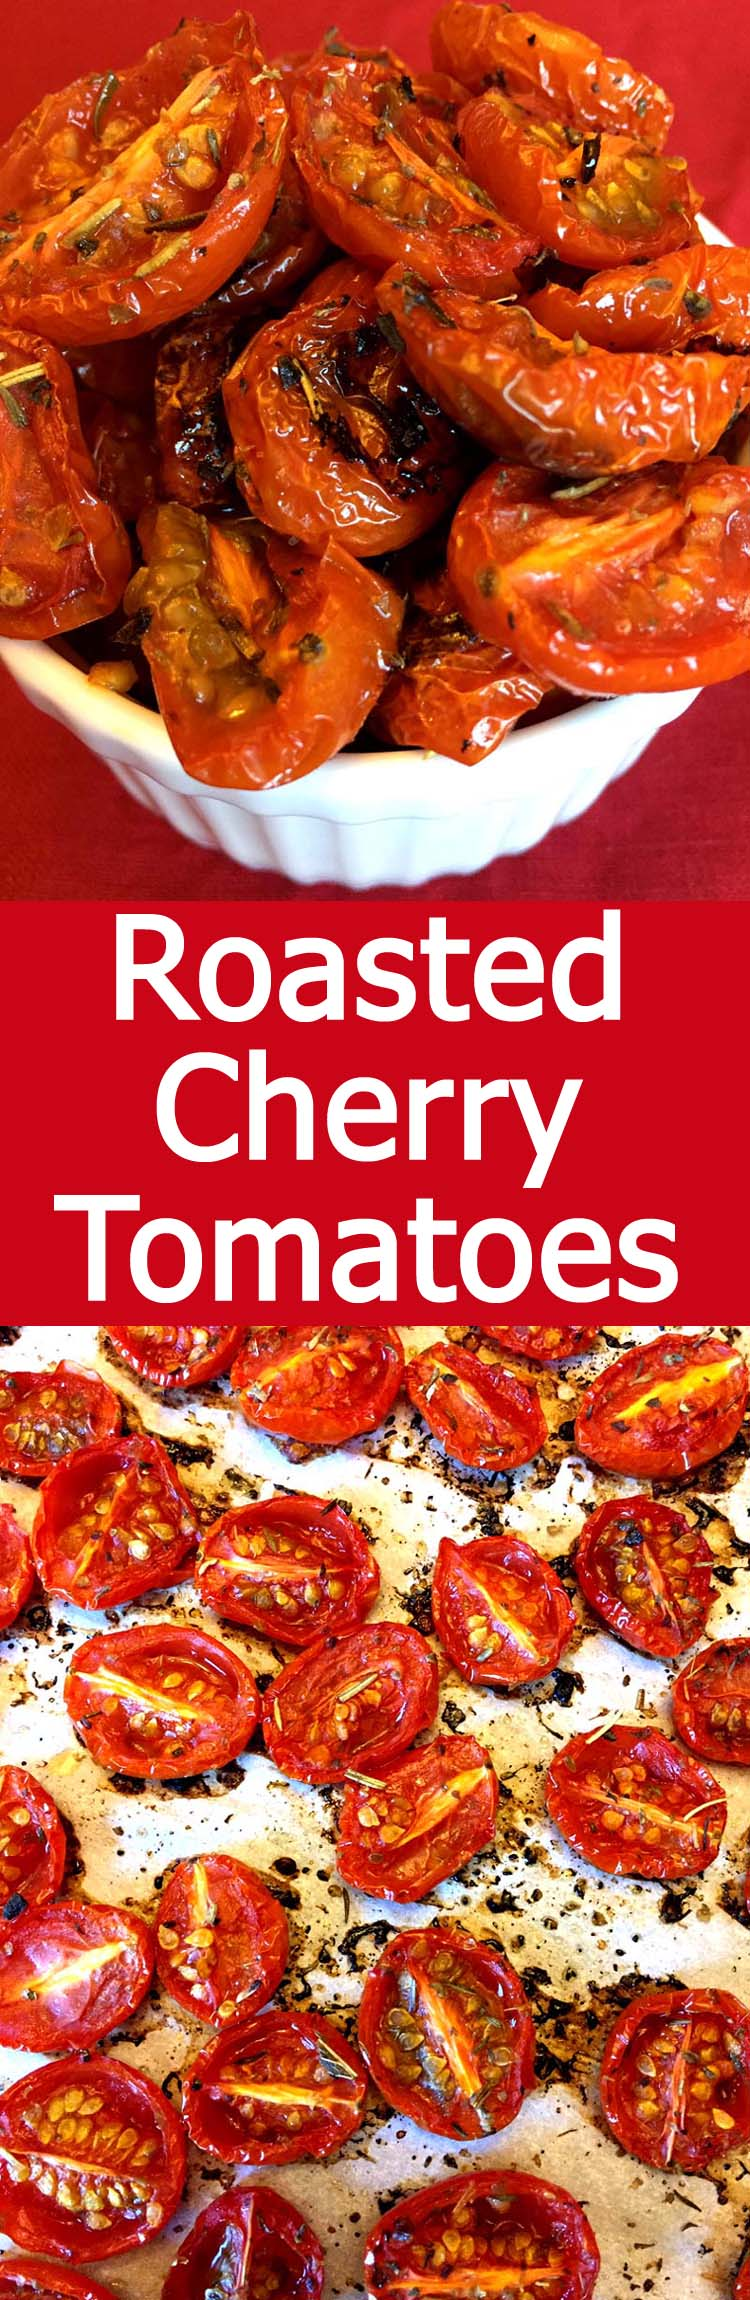 These oven roasted cherry tomatoes are amazing! So easy to make and such deep flavor!